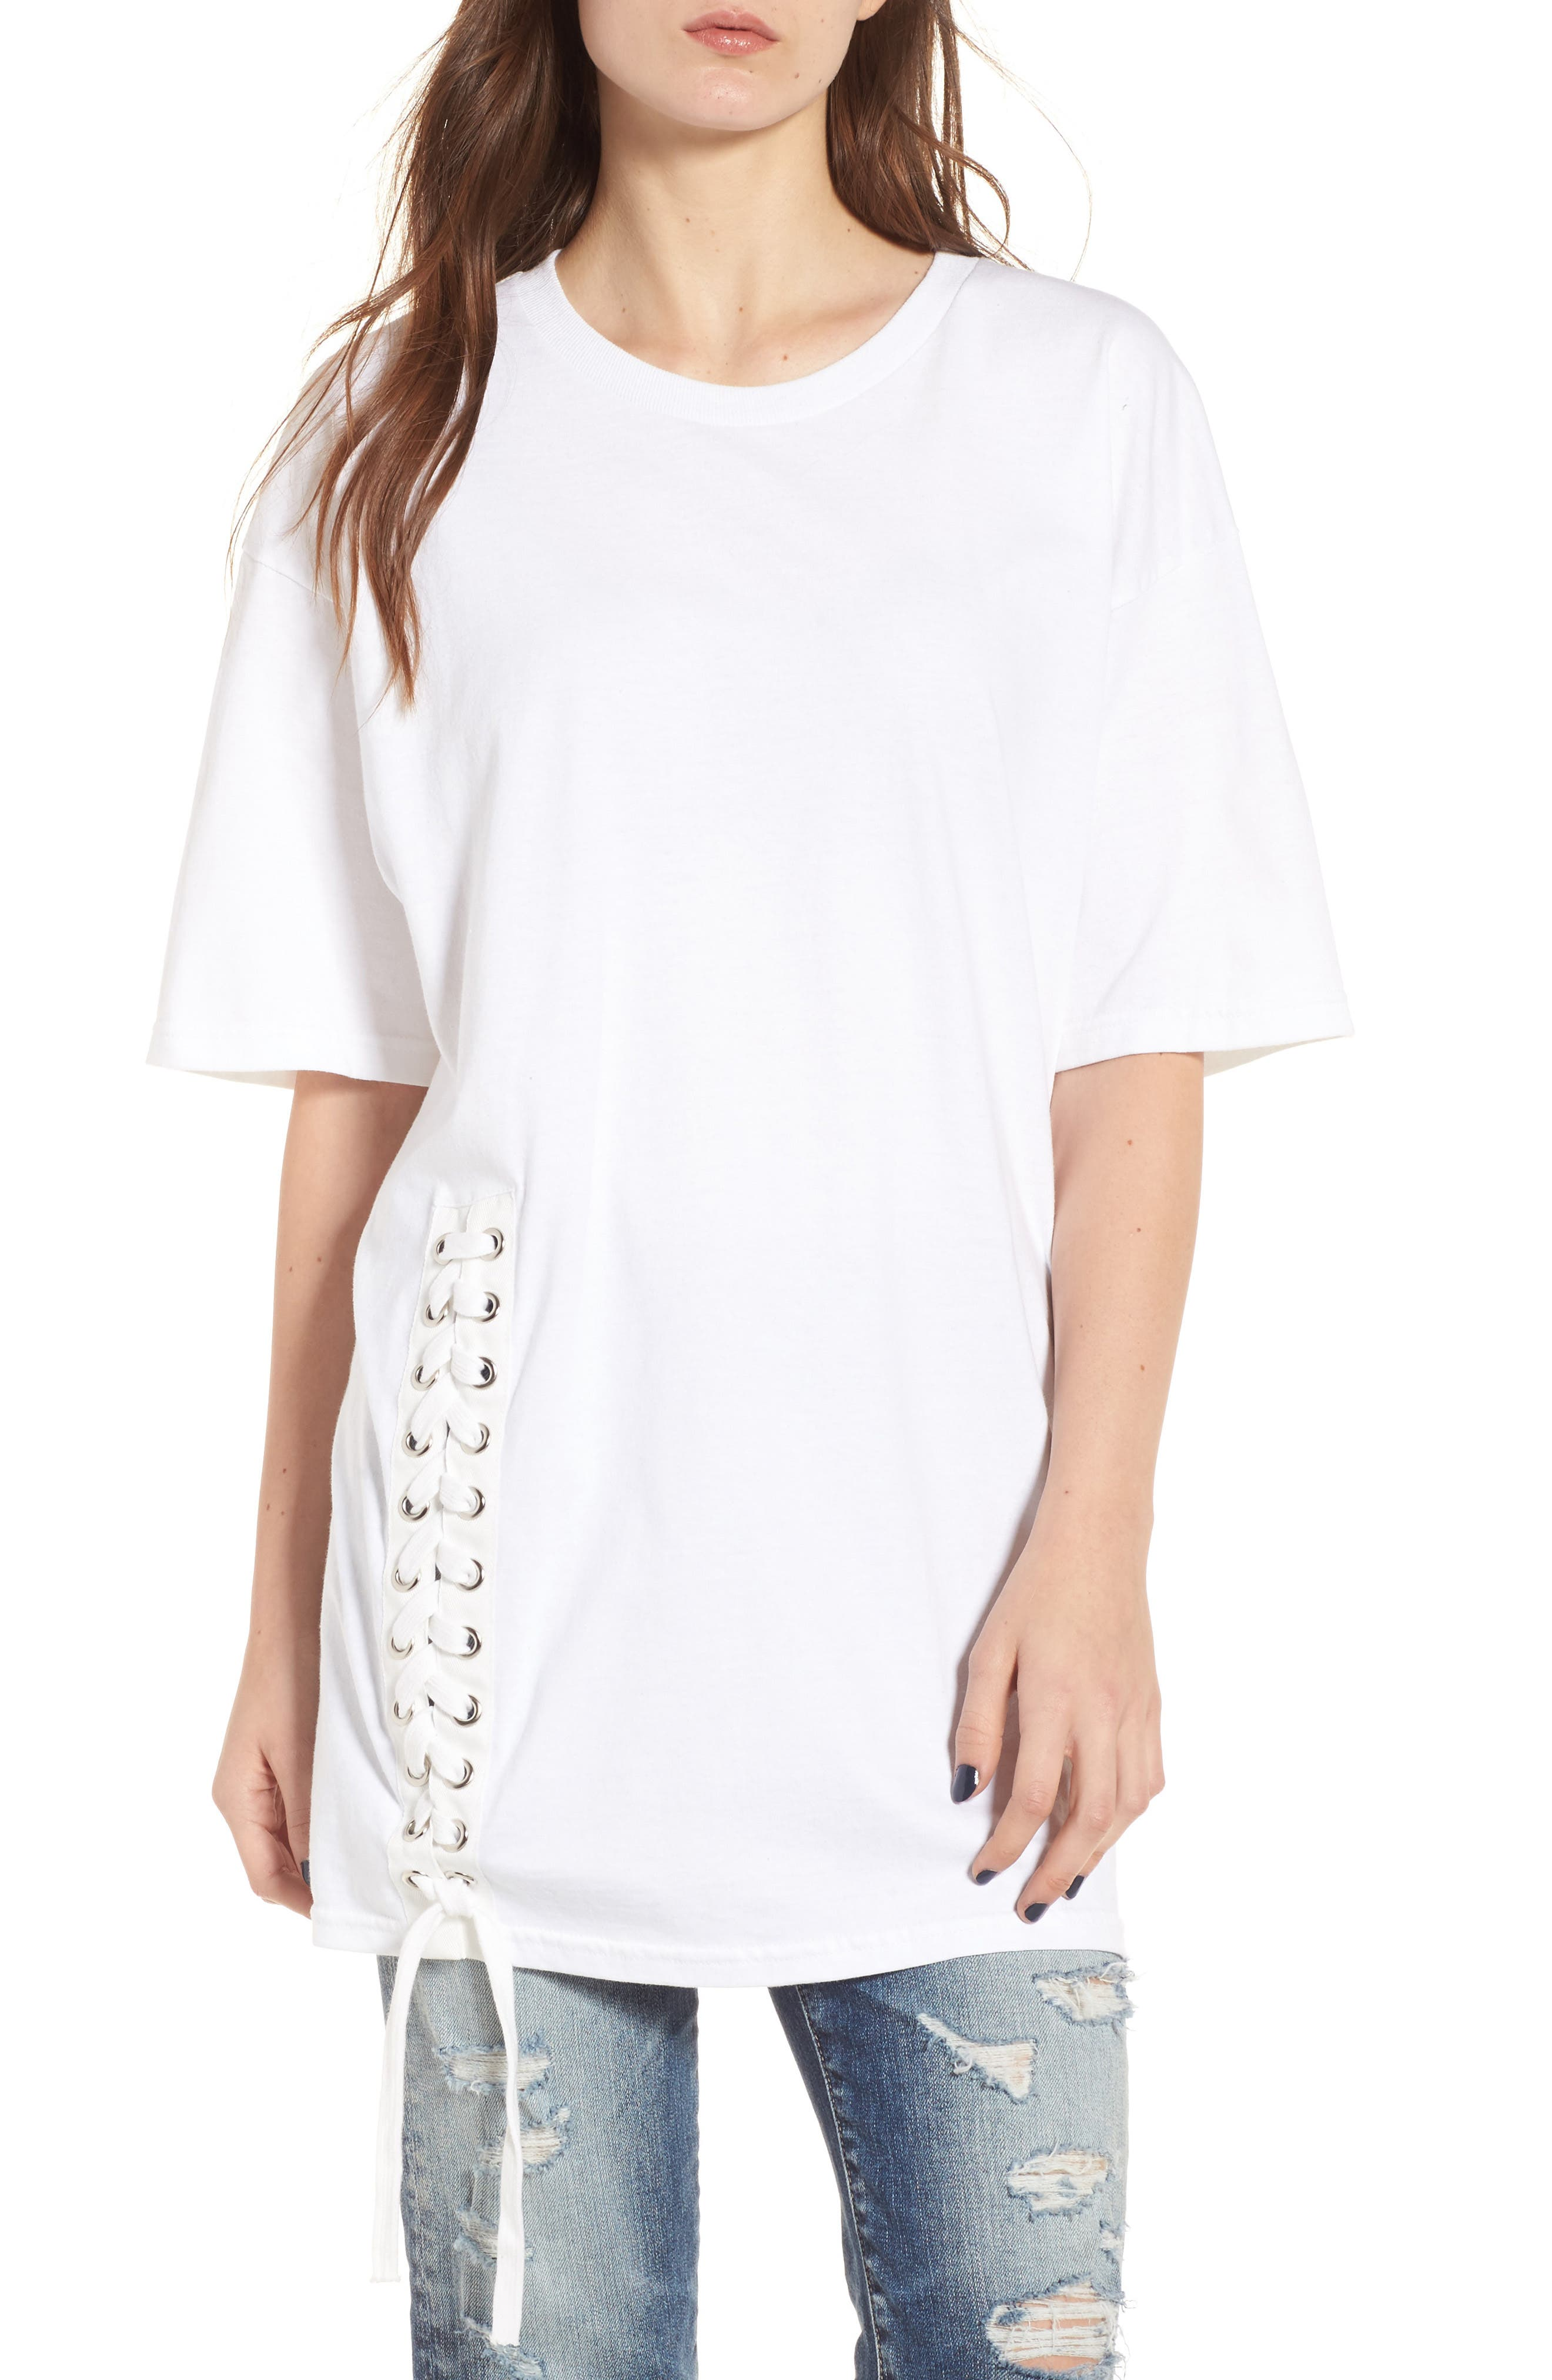 Main Image - KENDALL + KYLIE Lace-Up Tee